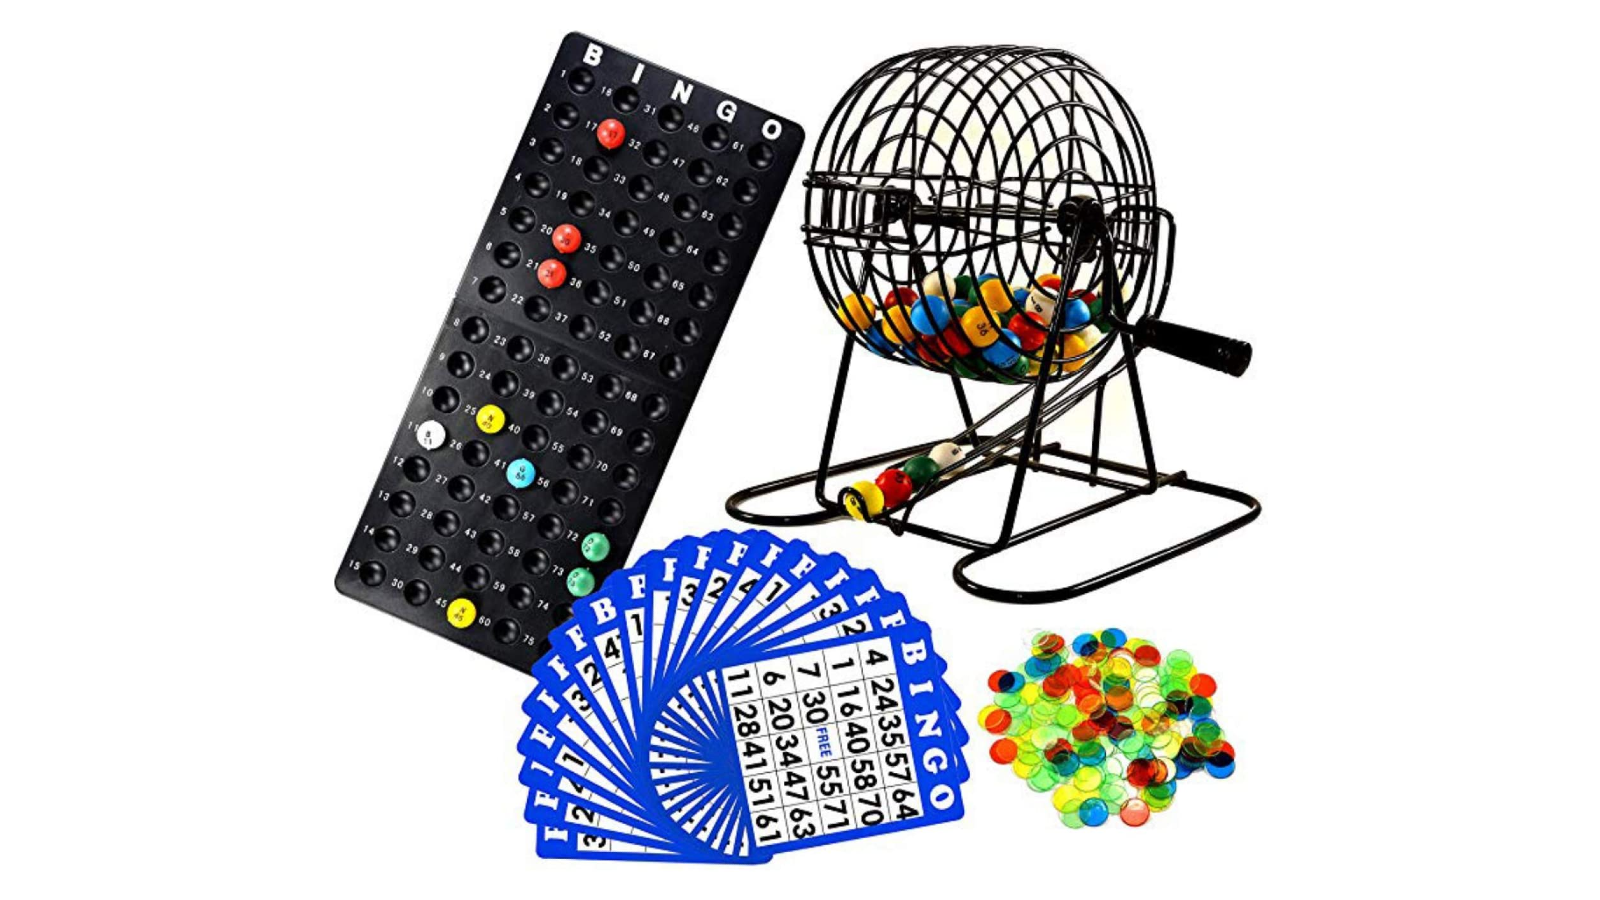 a complete bingo set with a cage, number balls, marker chips, cards, and a holder for the number balls